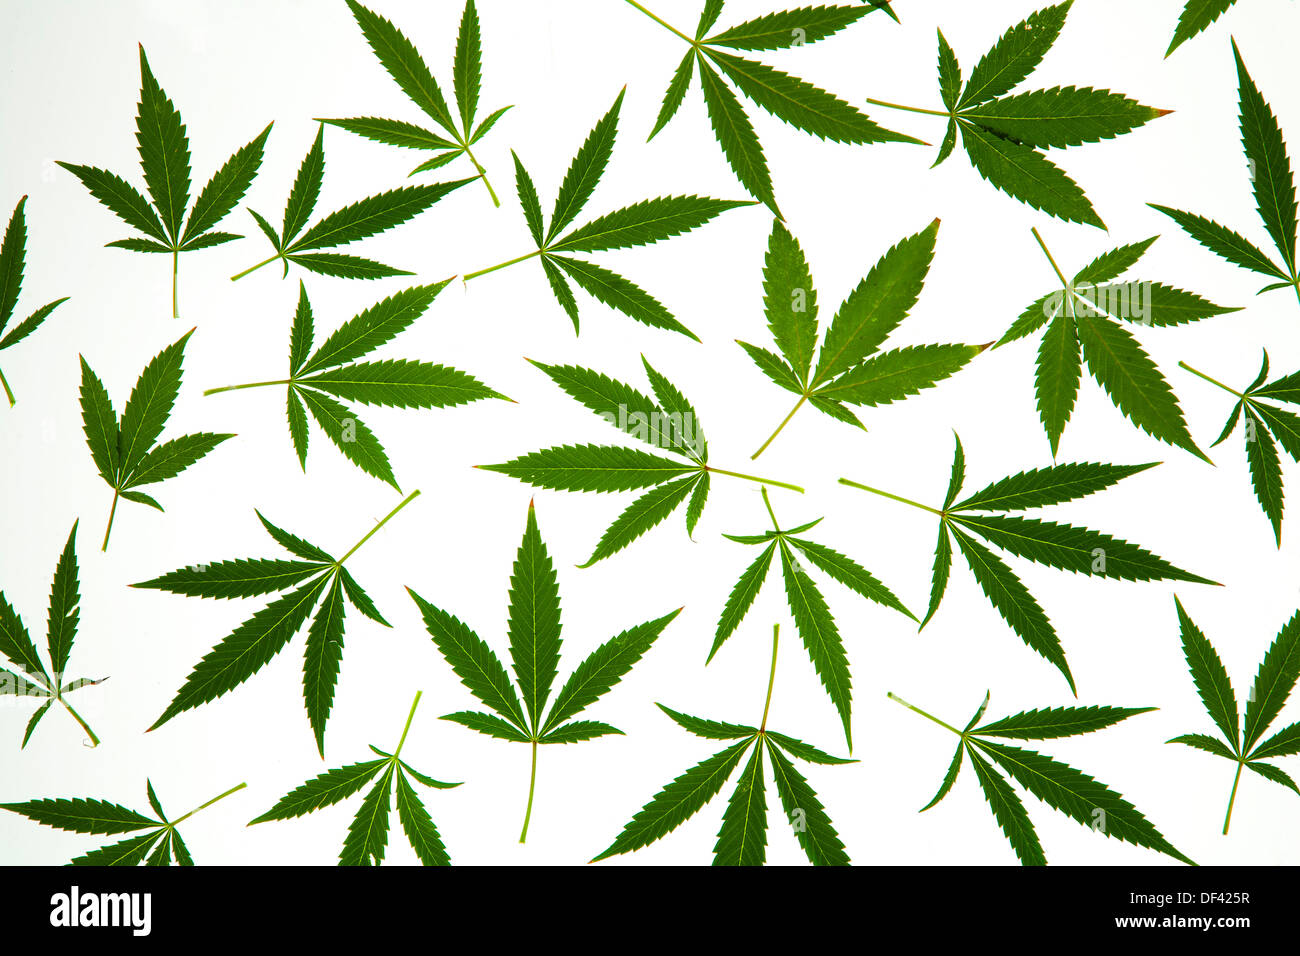 how to make weed from leaves